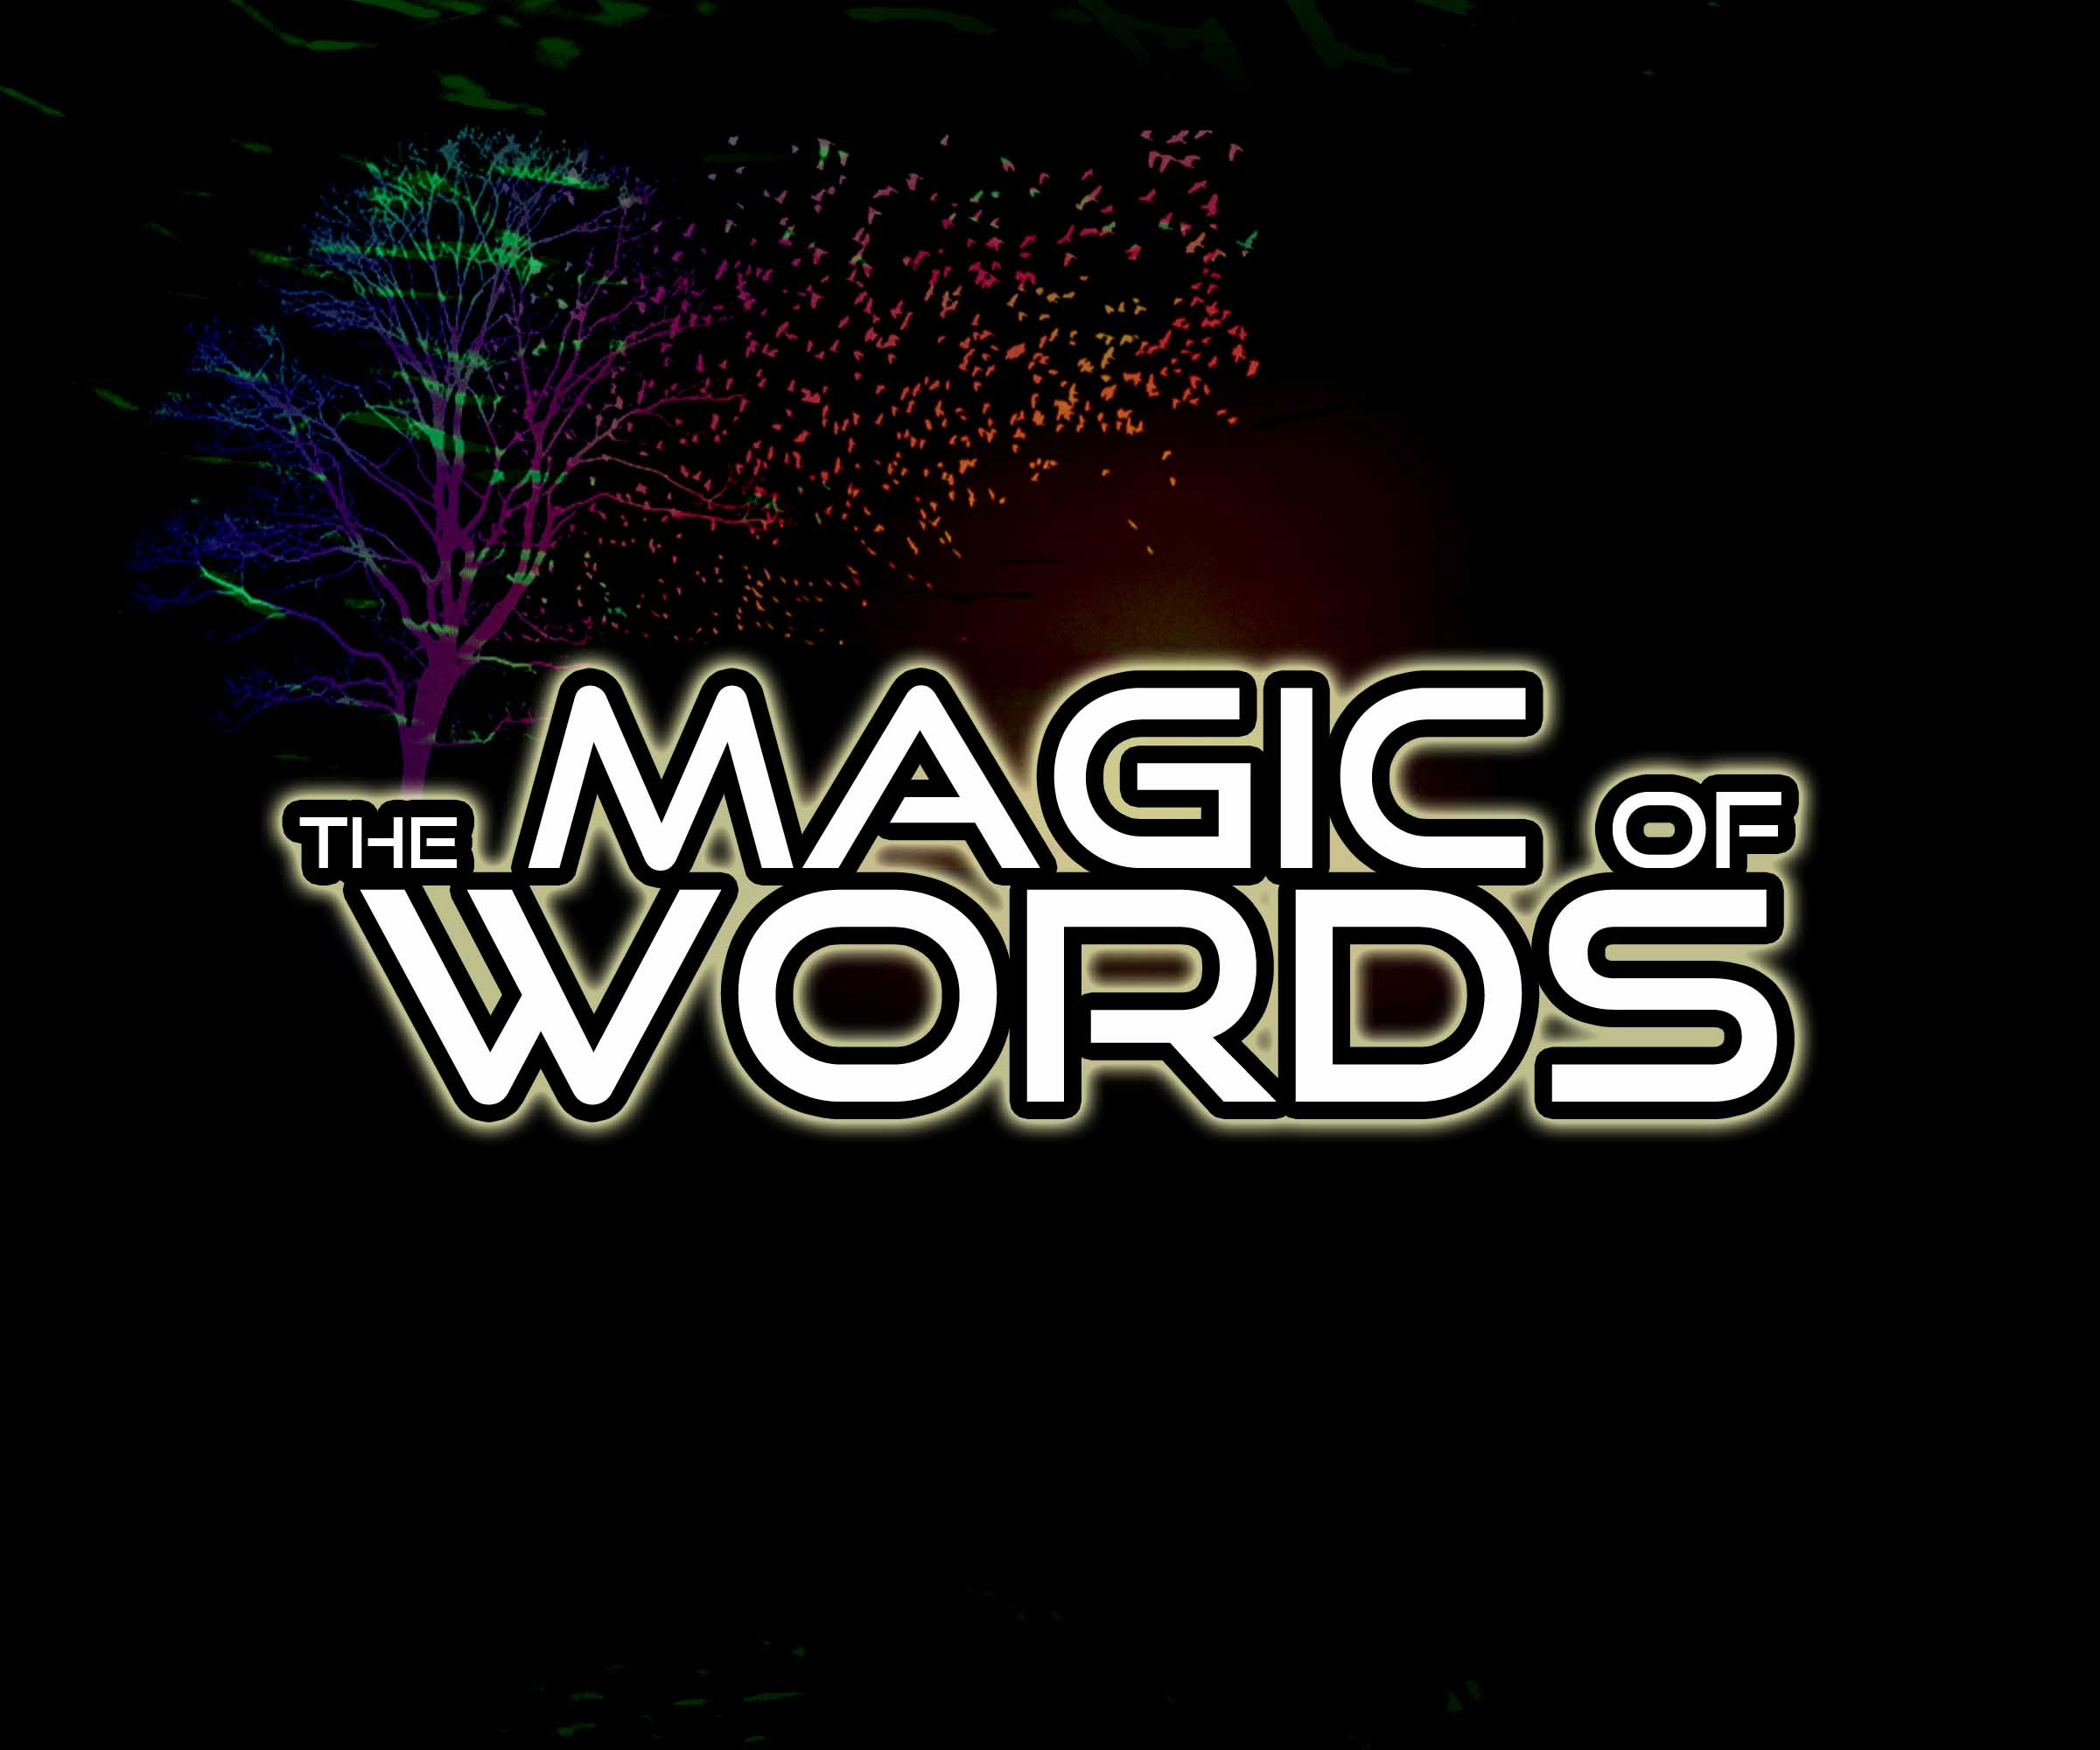 The Magic Of Words